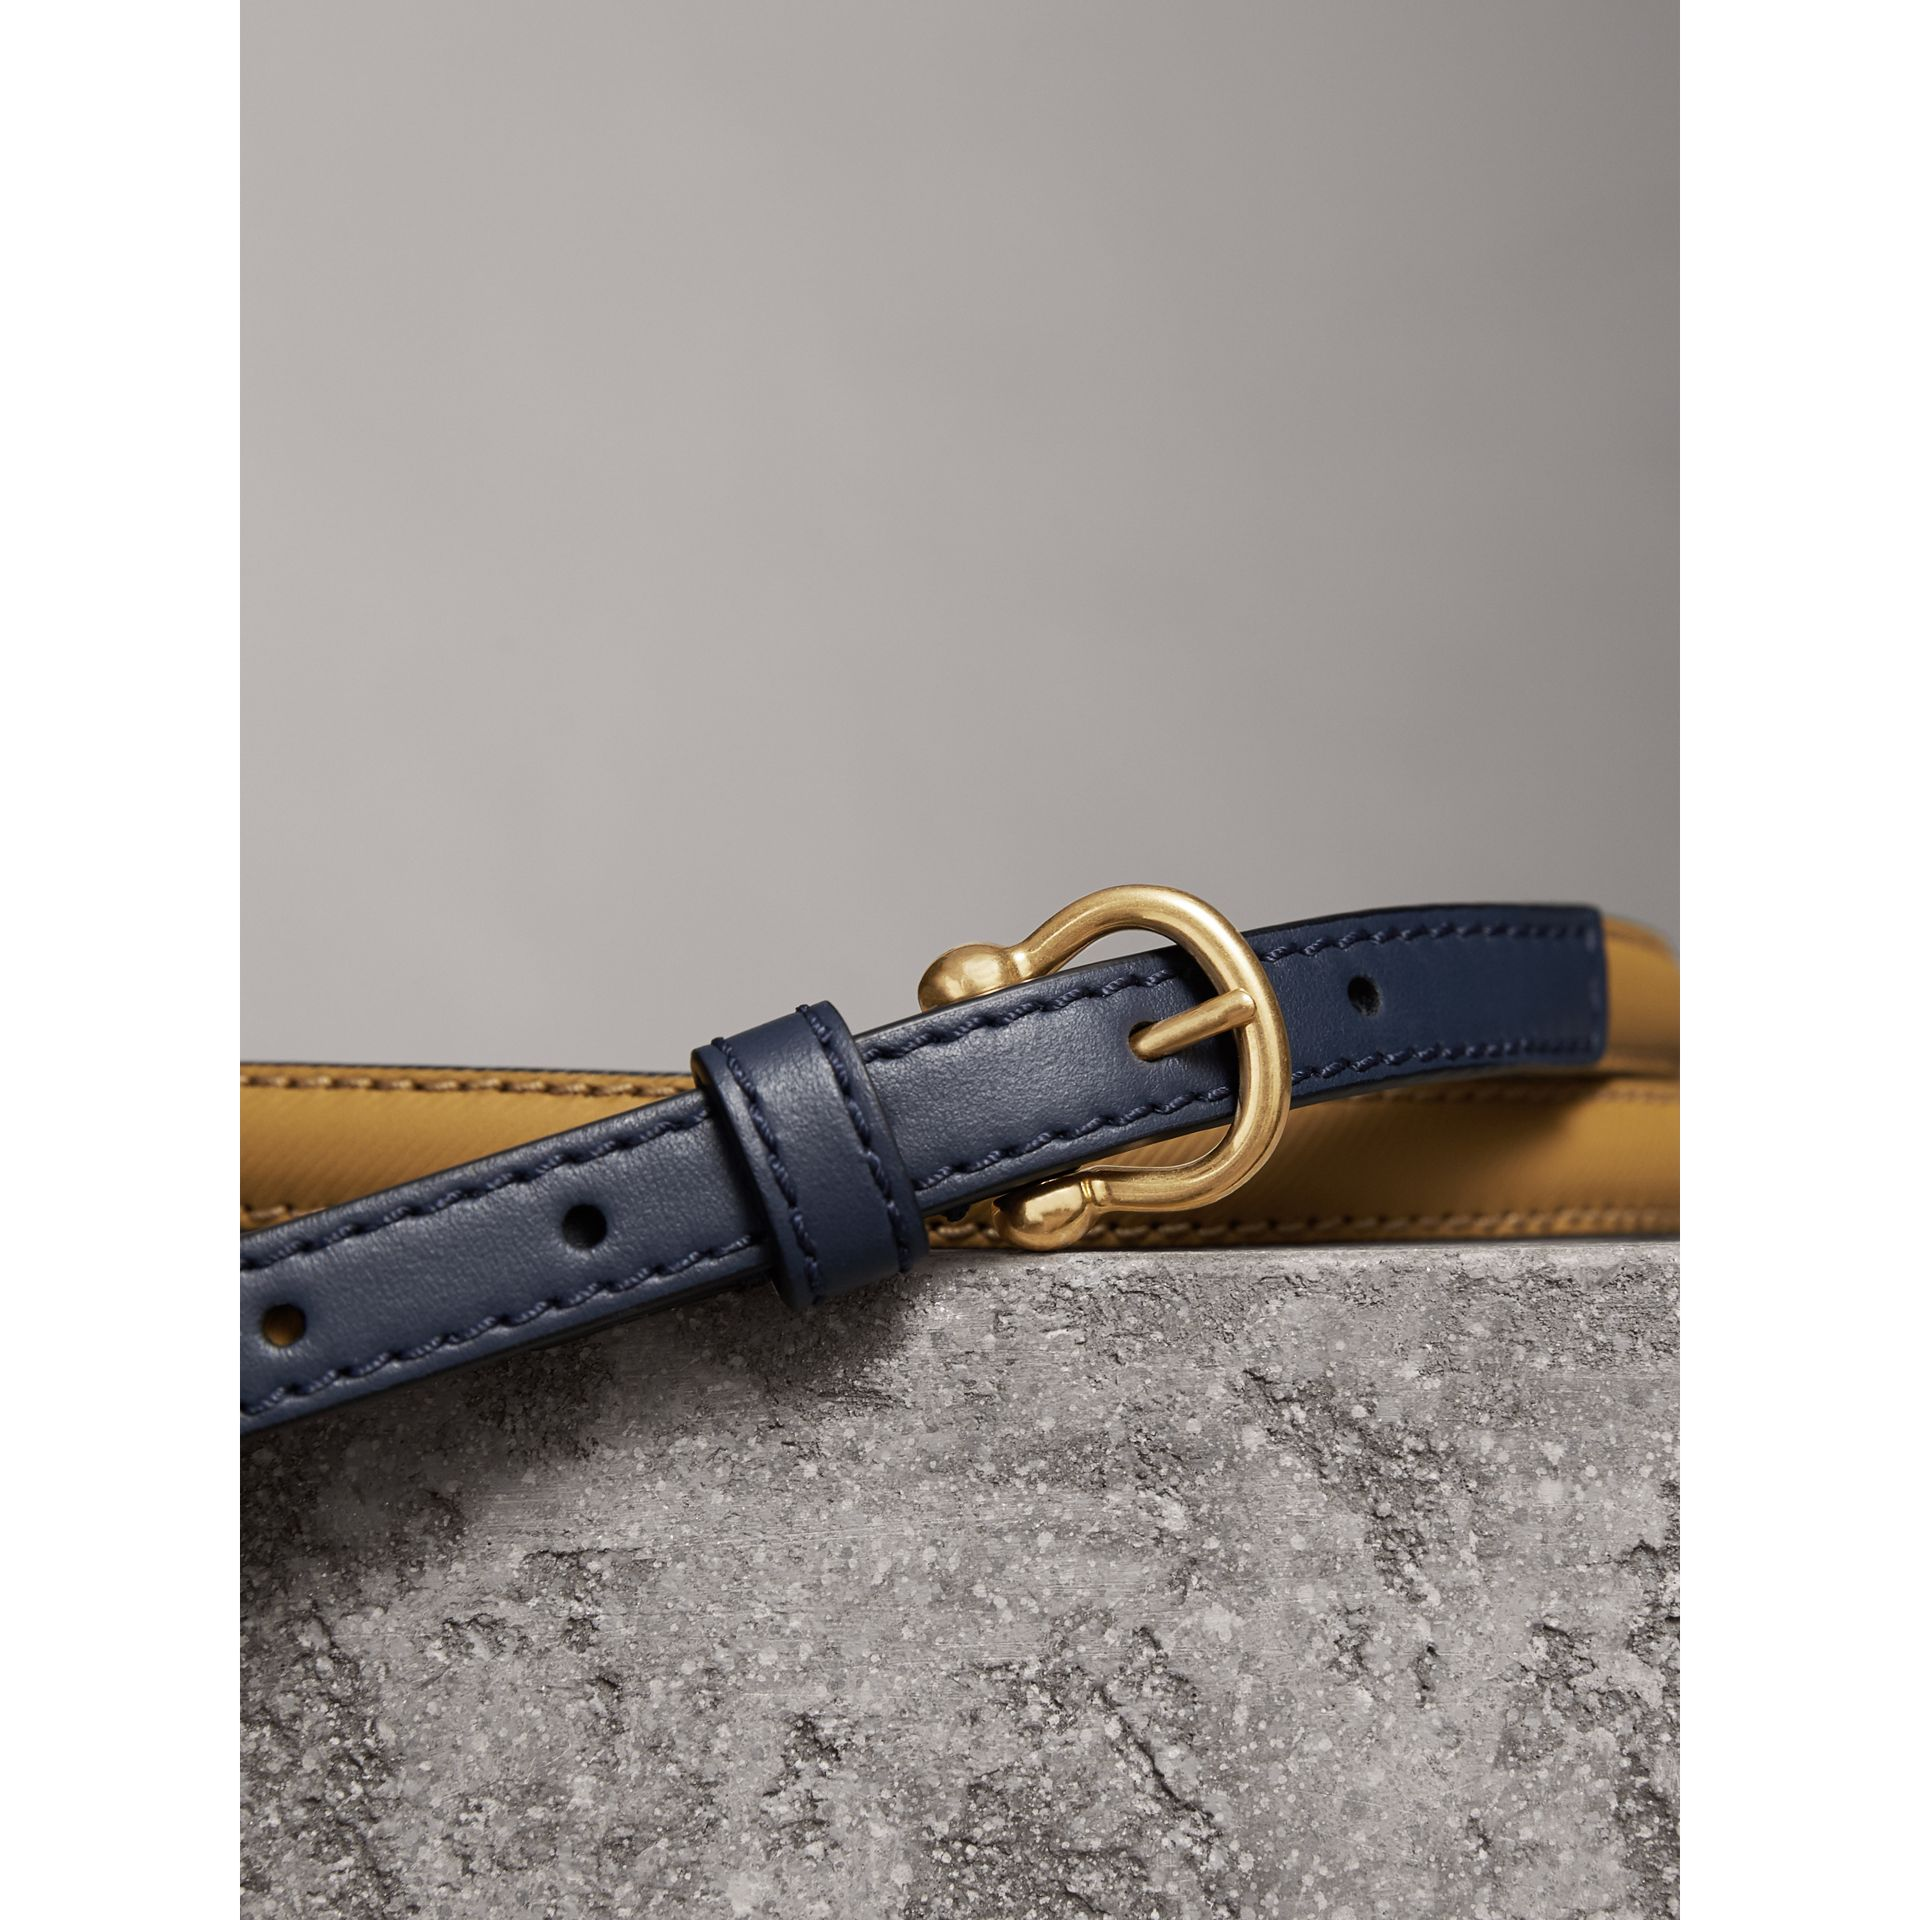 Two-tone Trench Leather Belt in Ochre Yellow / Ink Blue - Women | Burberry Australia - gallery image 2